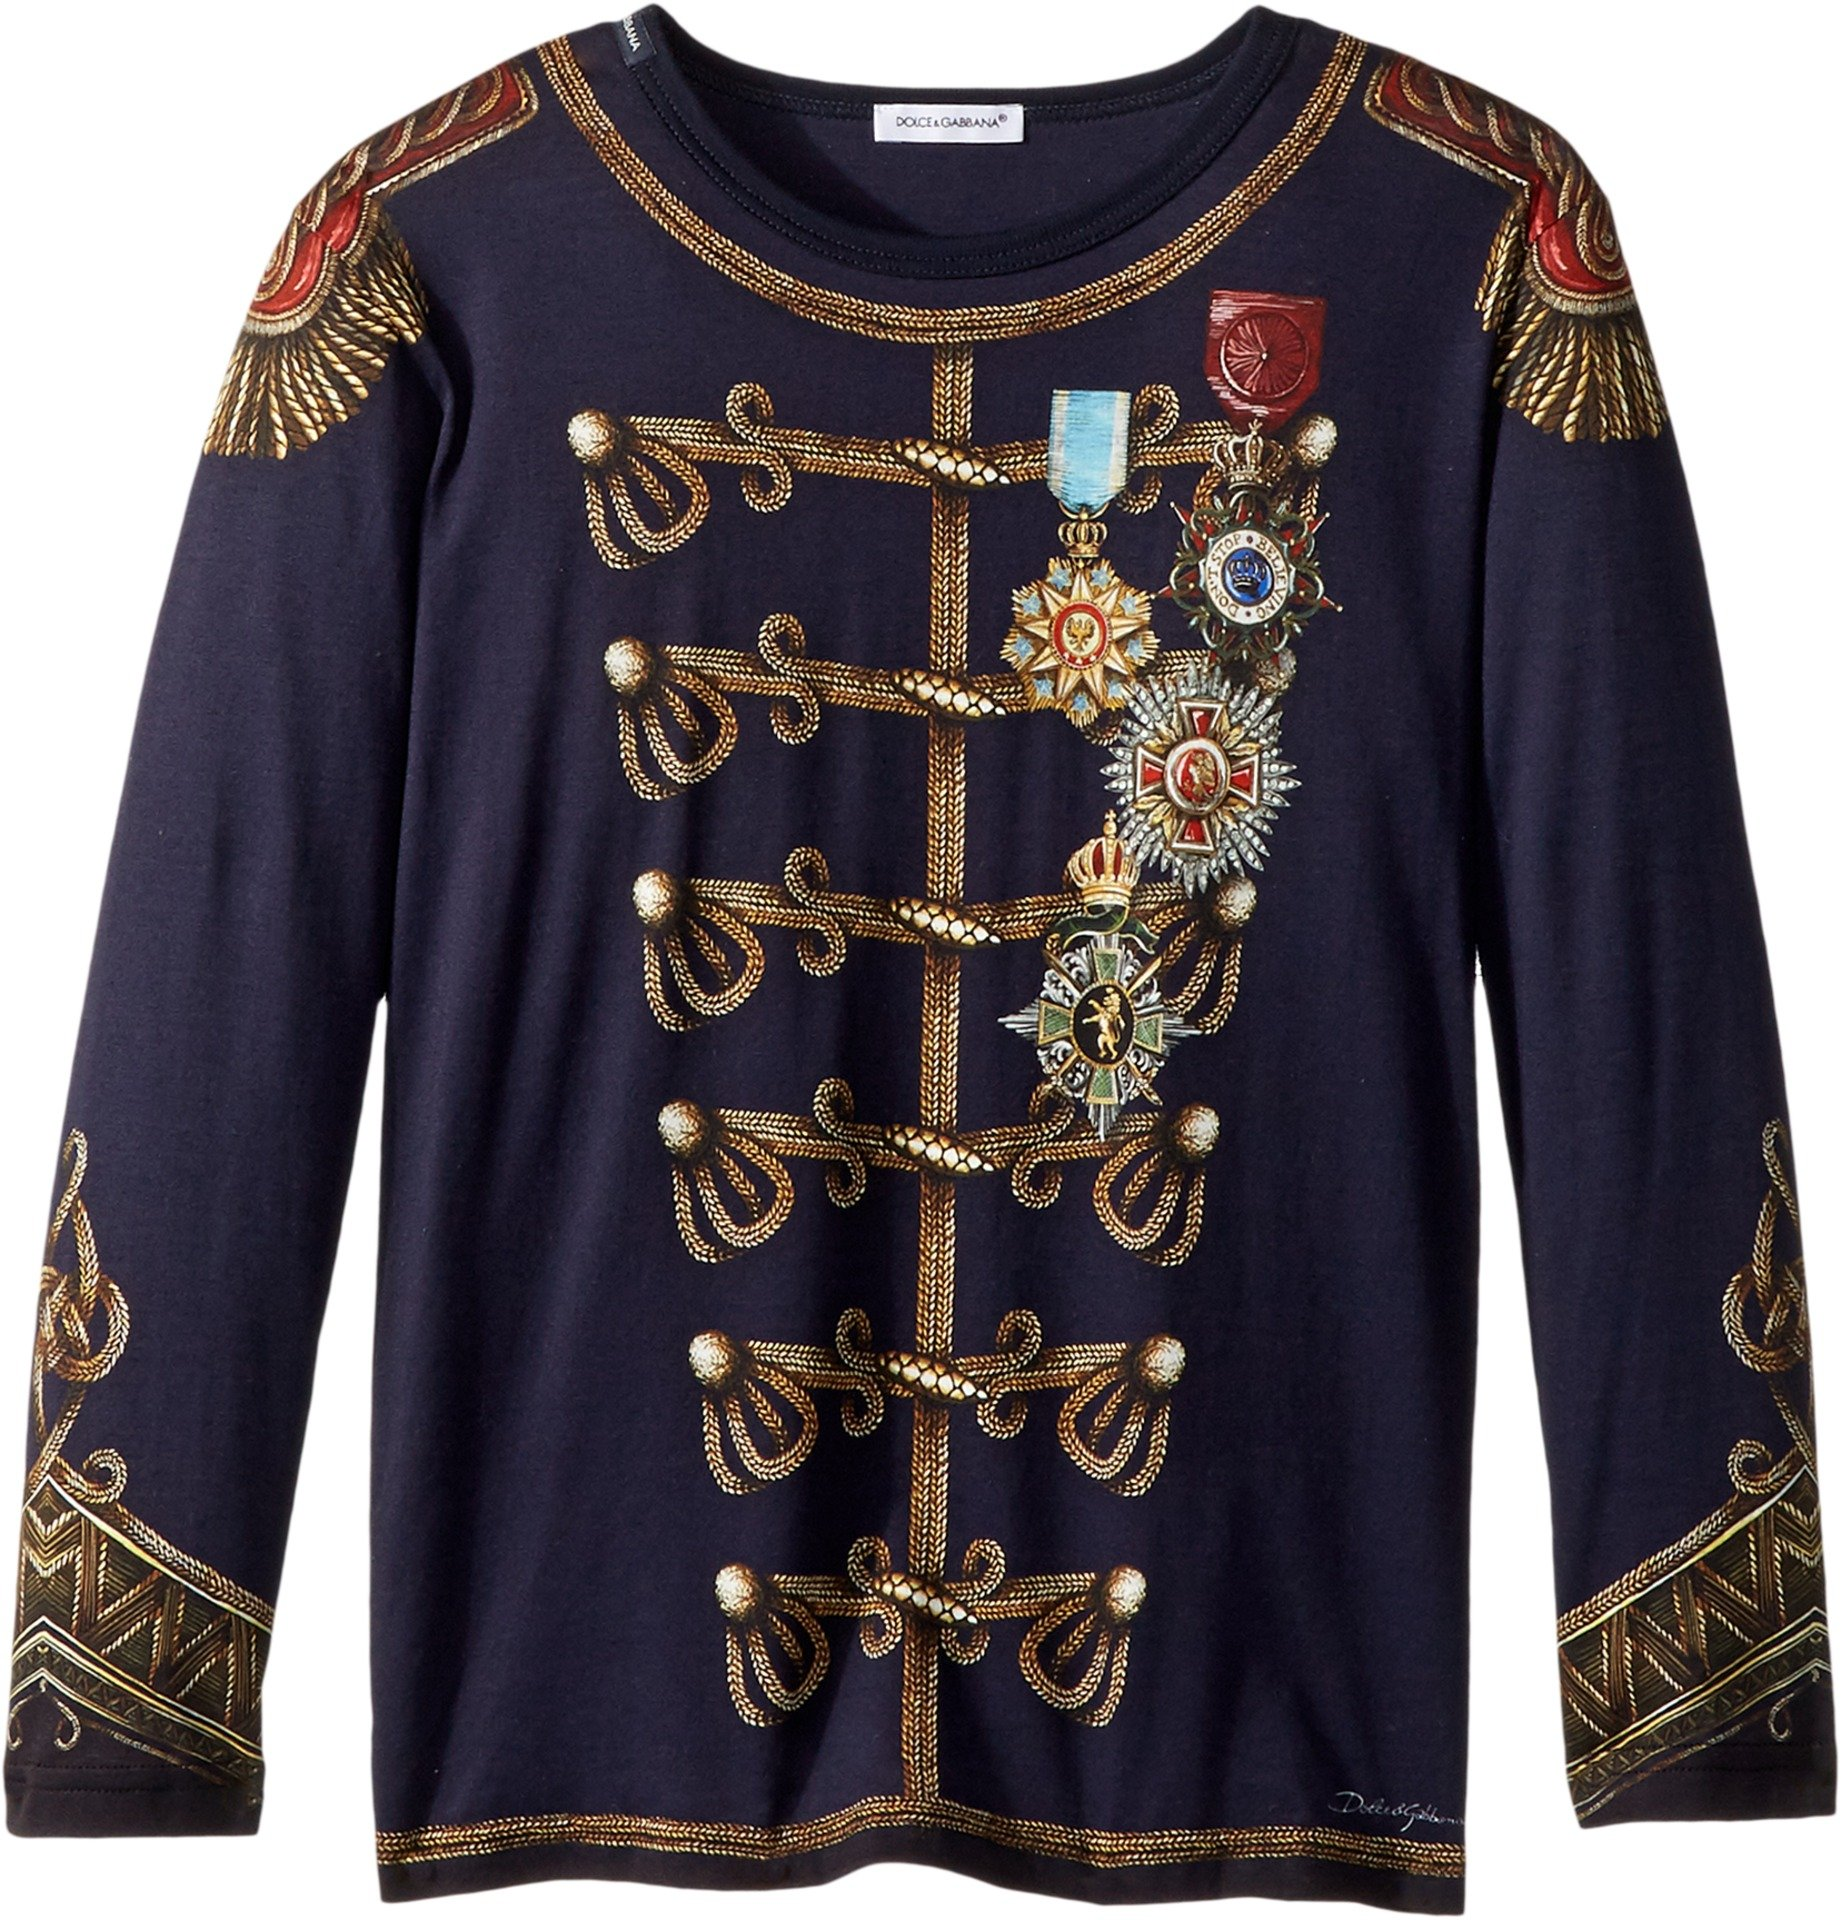 Dolce & Gabbana Kids  Baby Boy's Heraldic Long Sleeve T-Shirt (Toddler/Little Kids) Blue 6